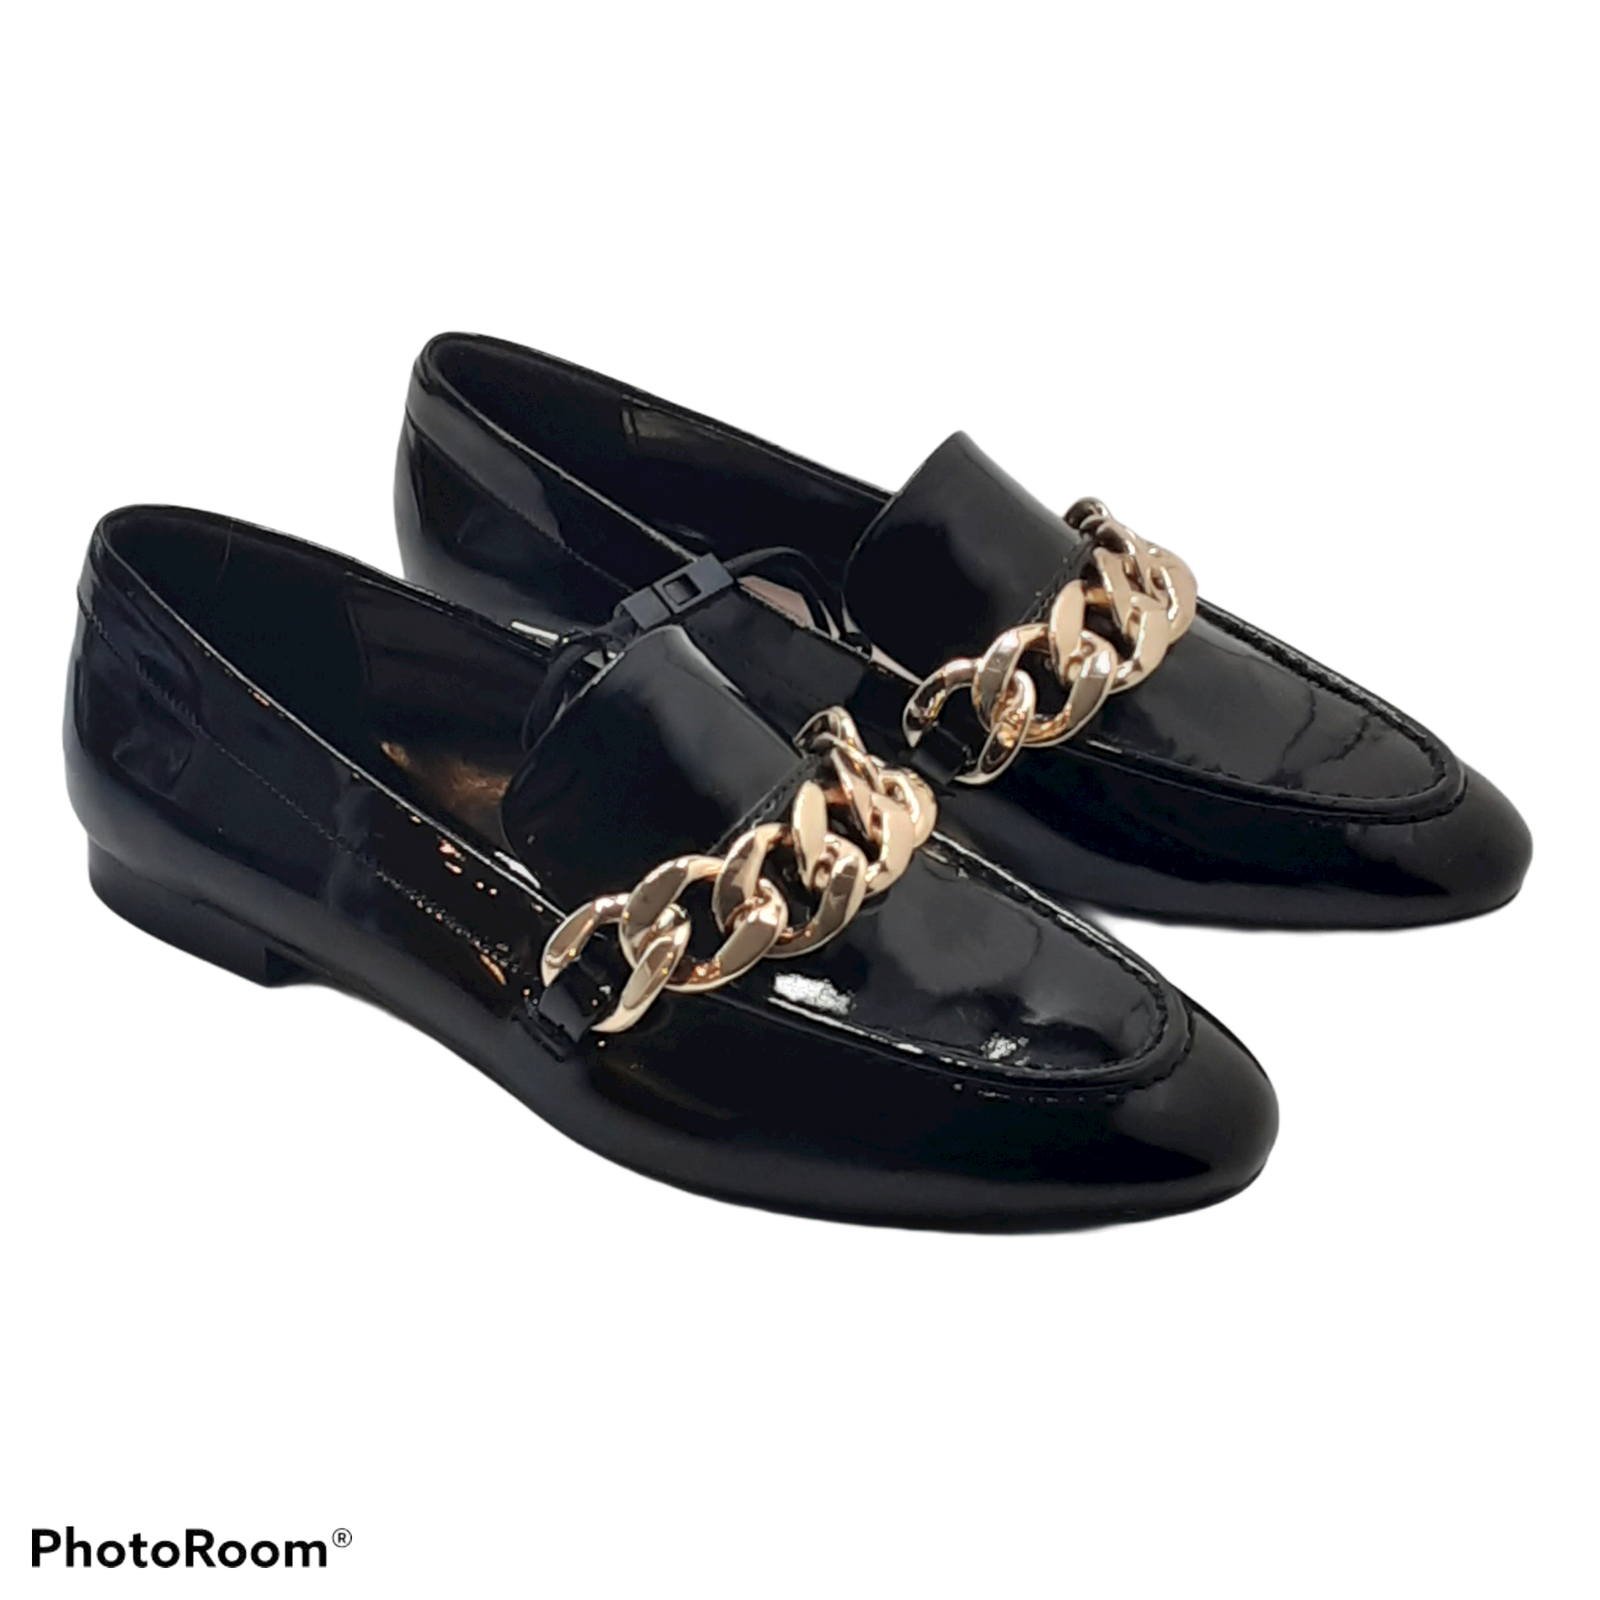 ZARA Black Patent Finished Chain Loafers Size 6 New